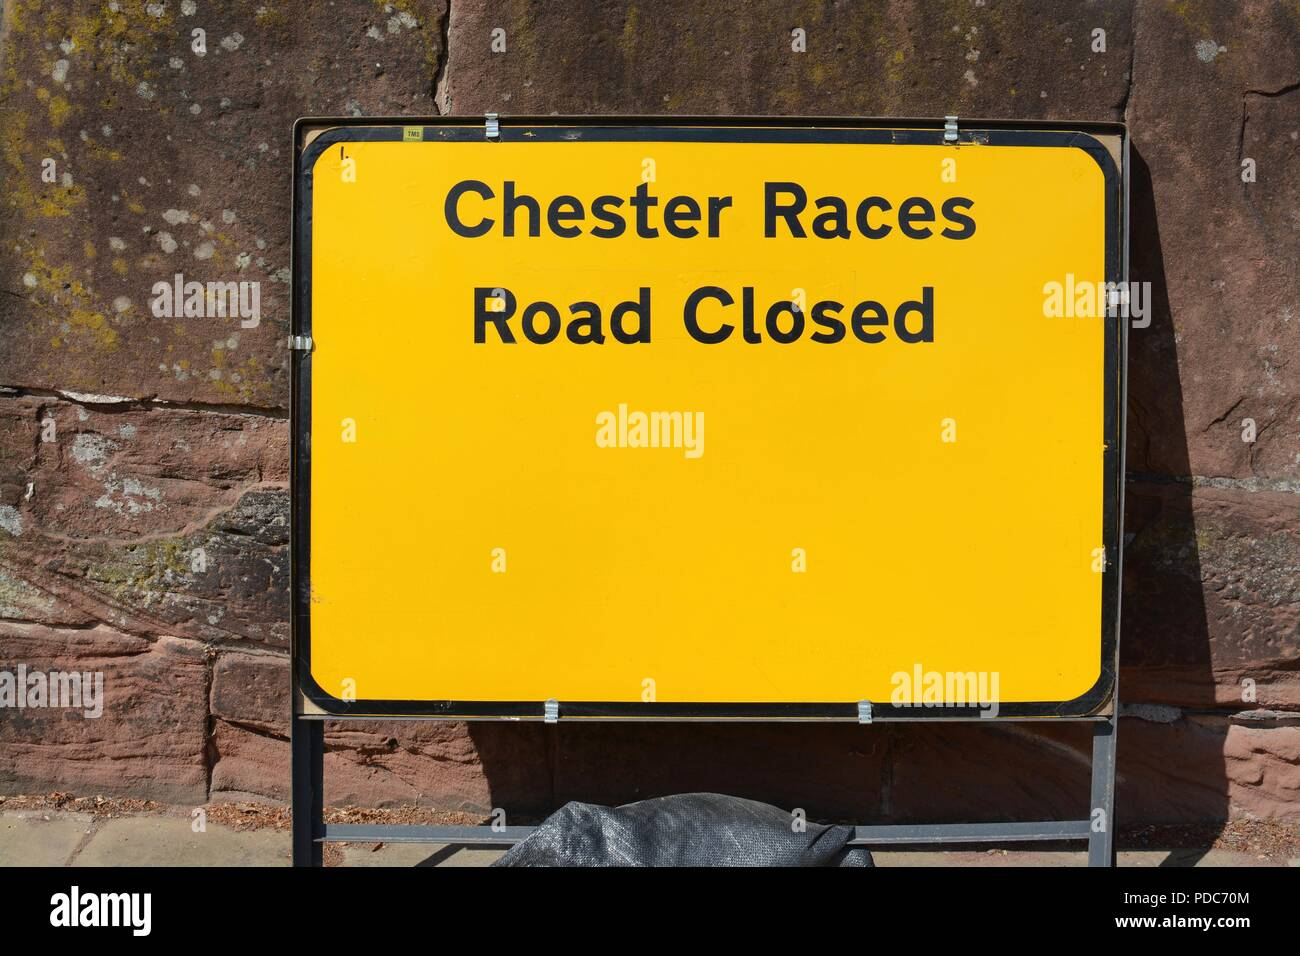 Chester race course road sign - Stock Image